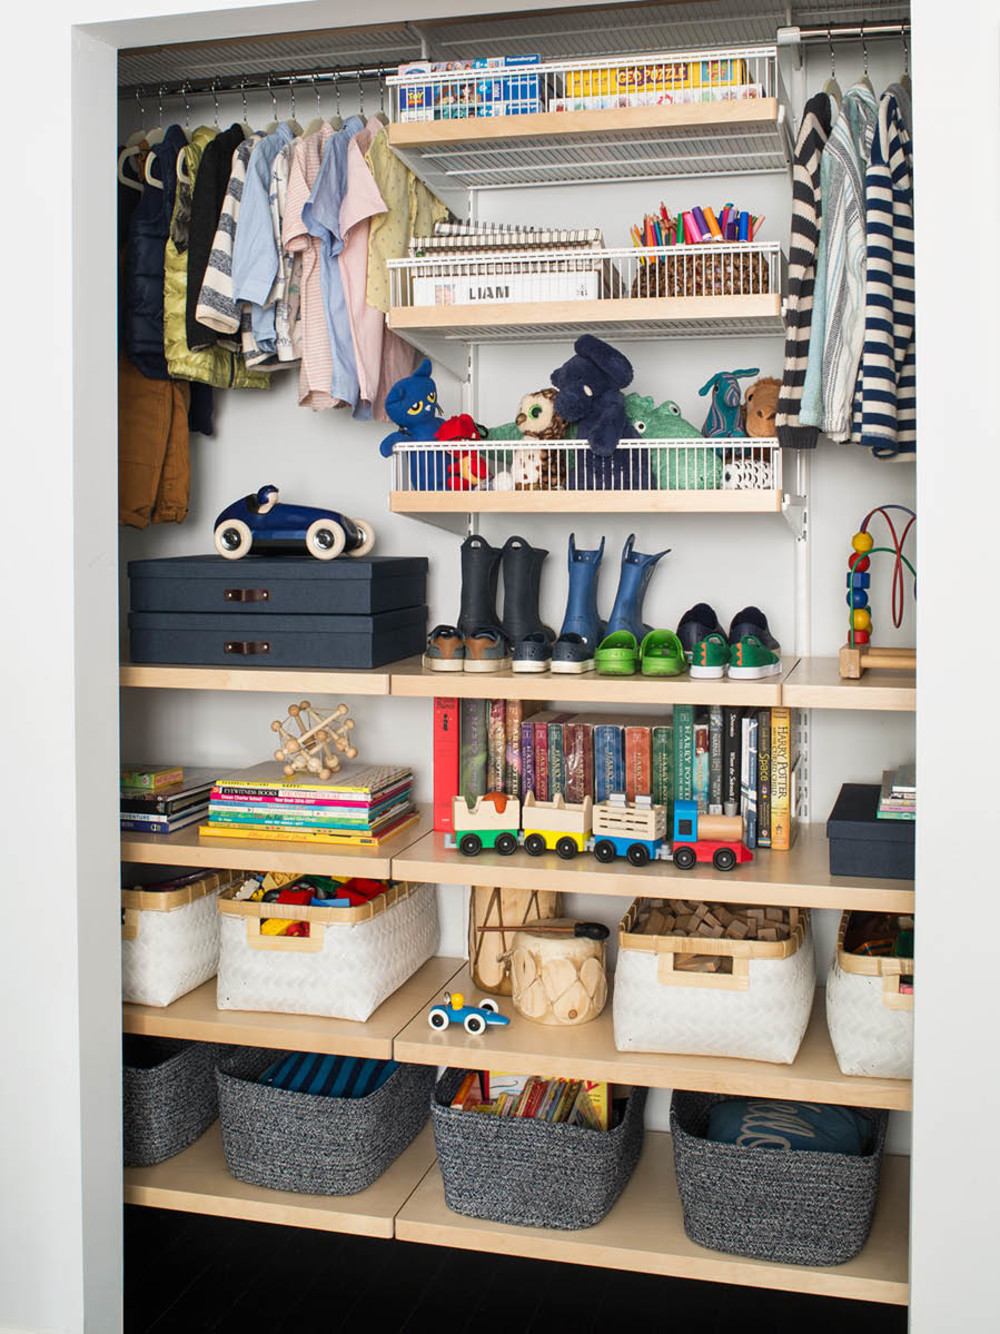 Featured Products White Birch Elfa Decor Kids Reach In Closet Bigso Marten Navy Office Storage Boxes Hampton Woven Bins With Handles